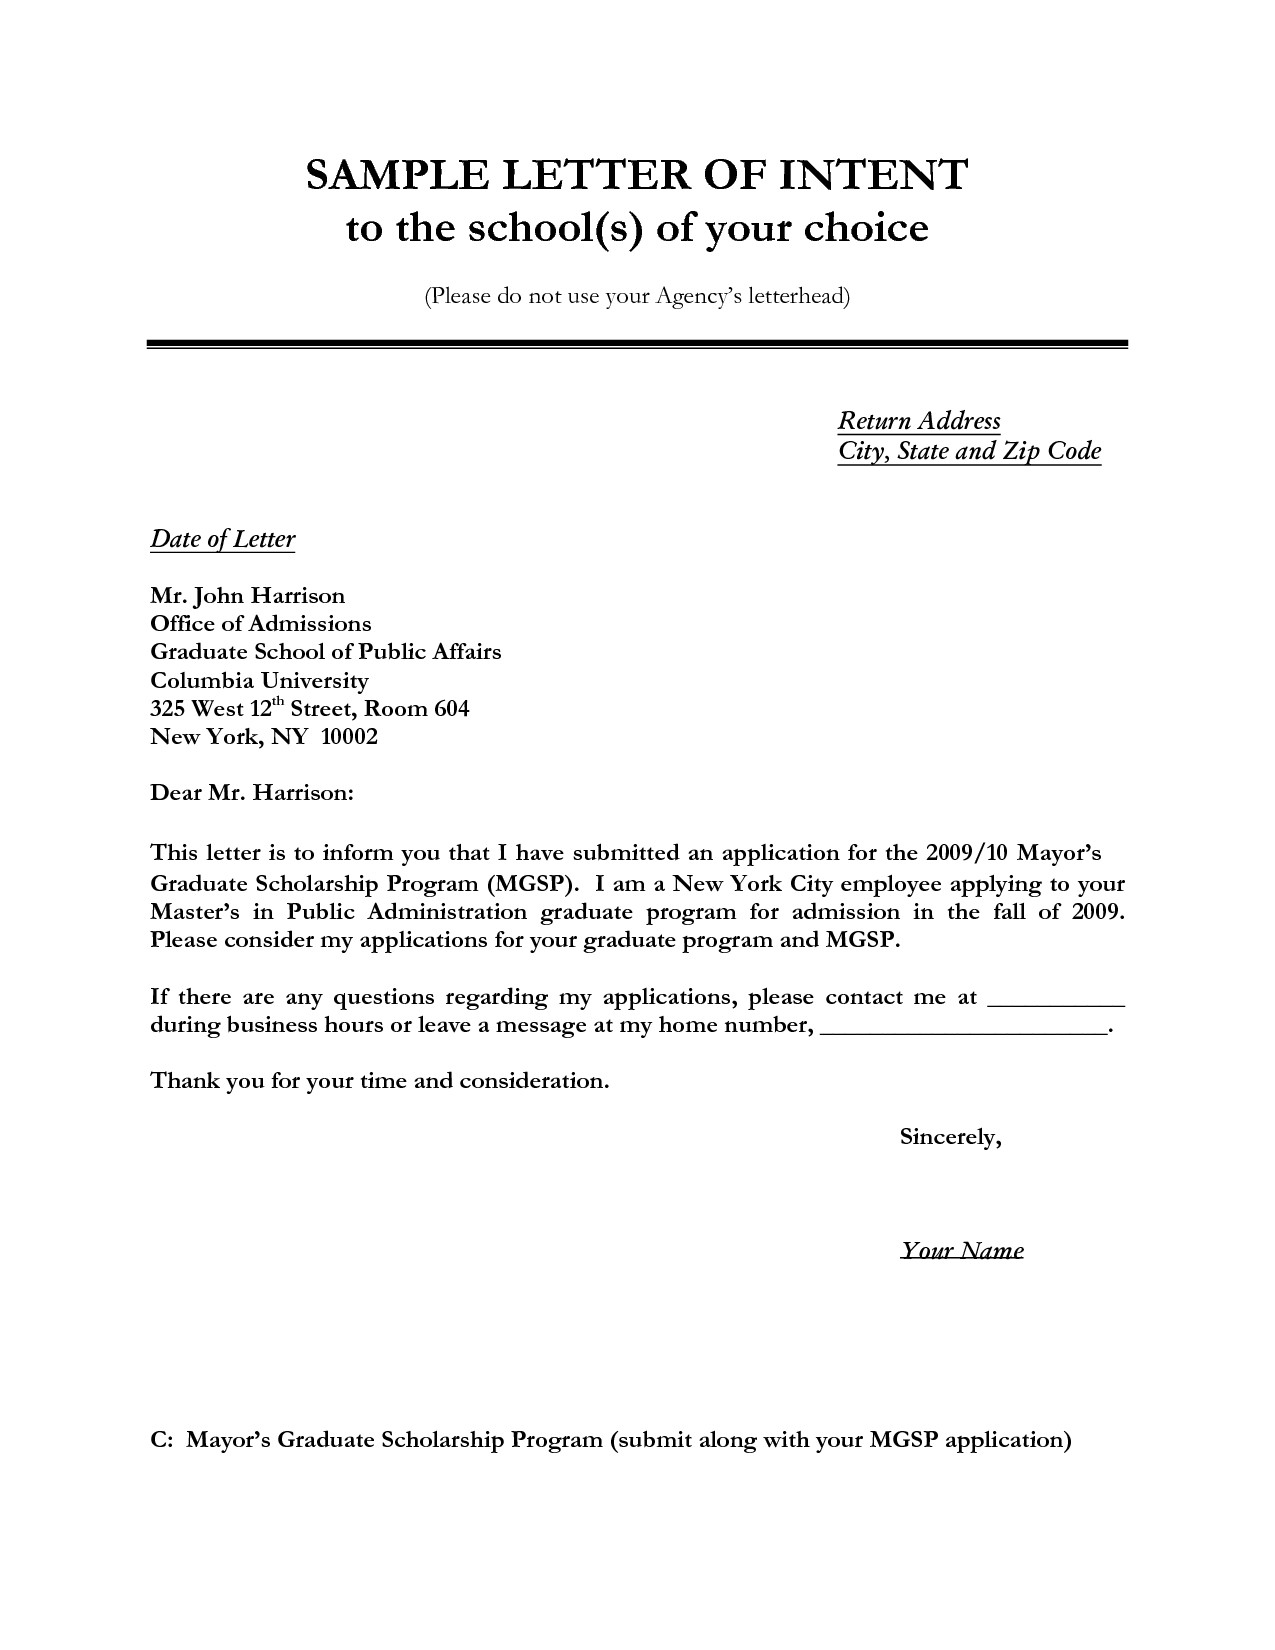 Letter Of Intent Template Commercial Lease - Letter Of Intent Sample